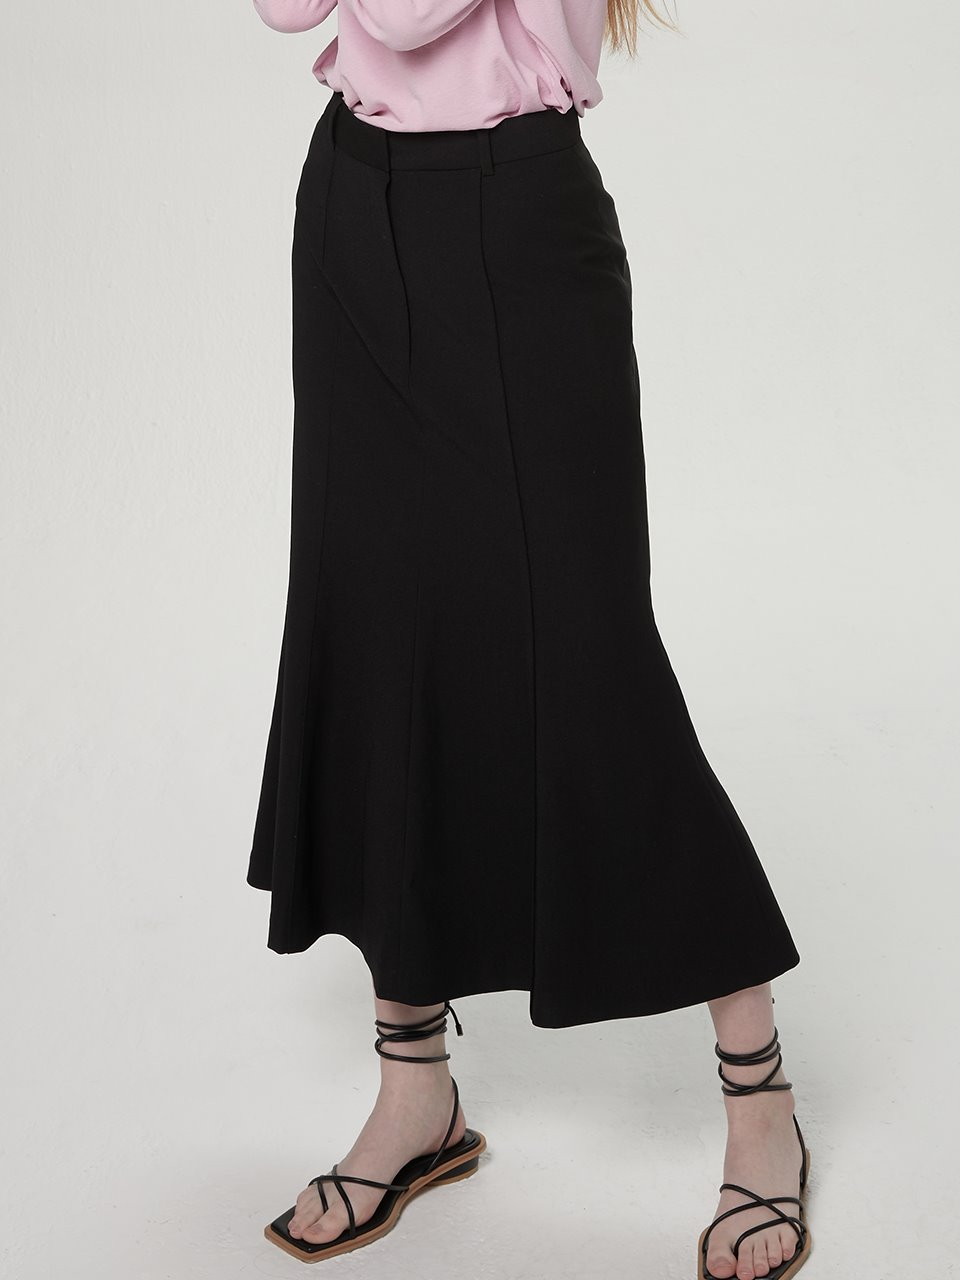 Long mermaid skirt - Black